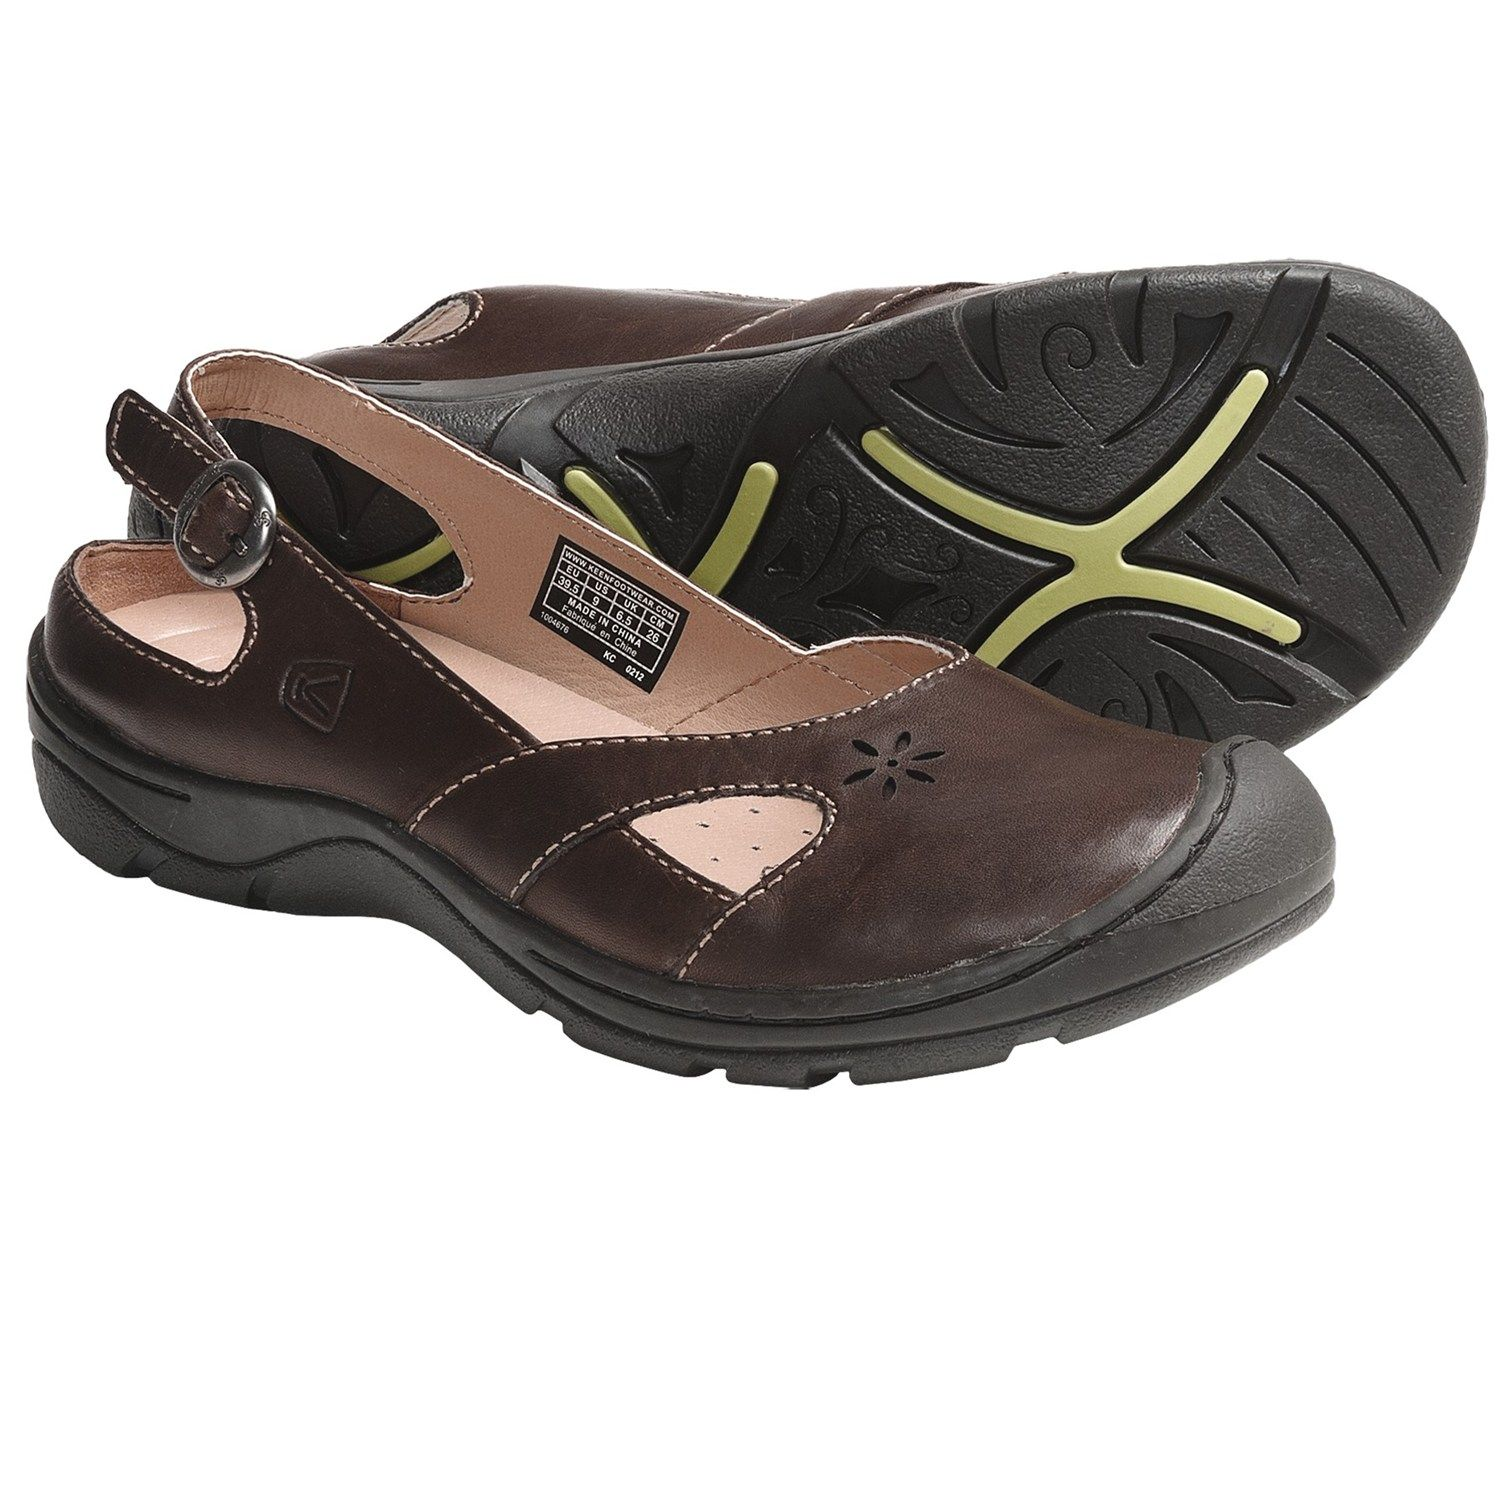 54c530f86377 Keen Paradise Shoes - Leather